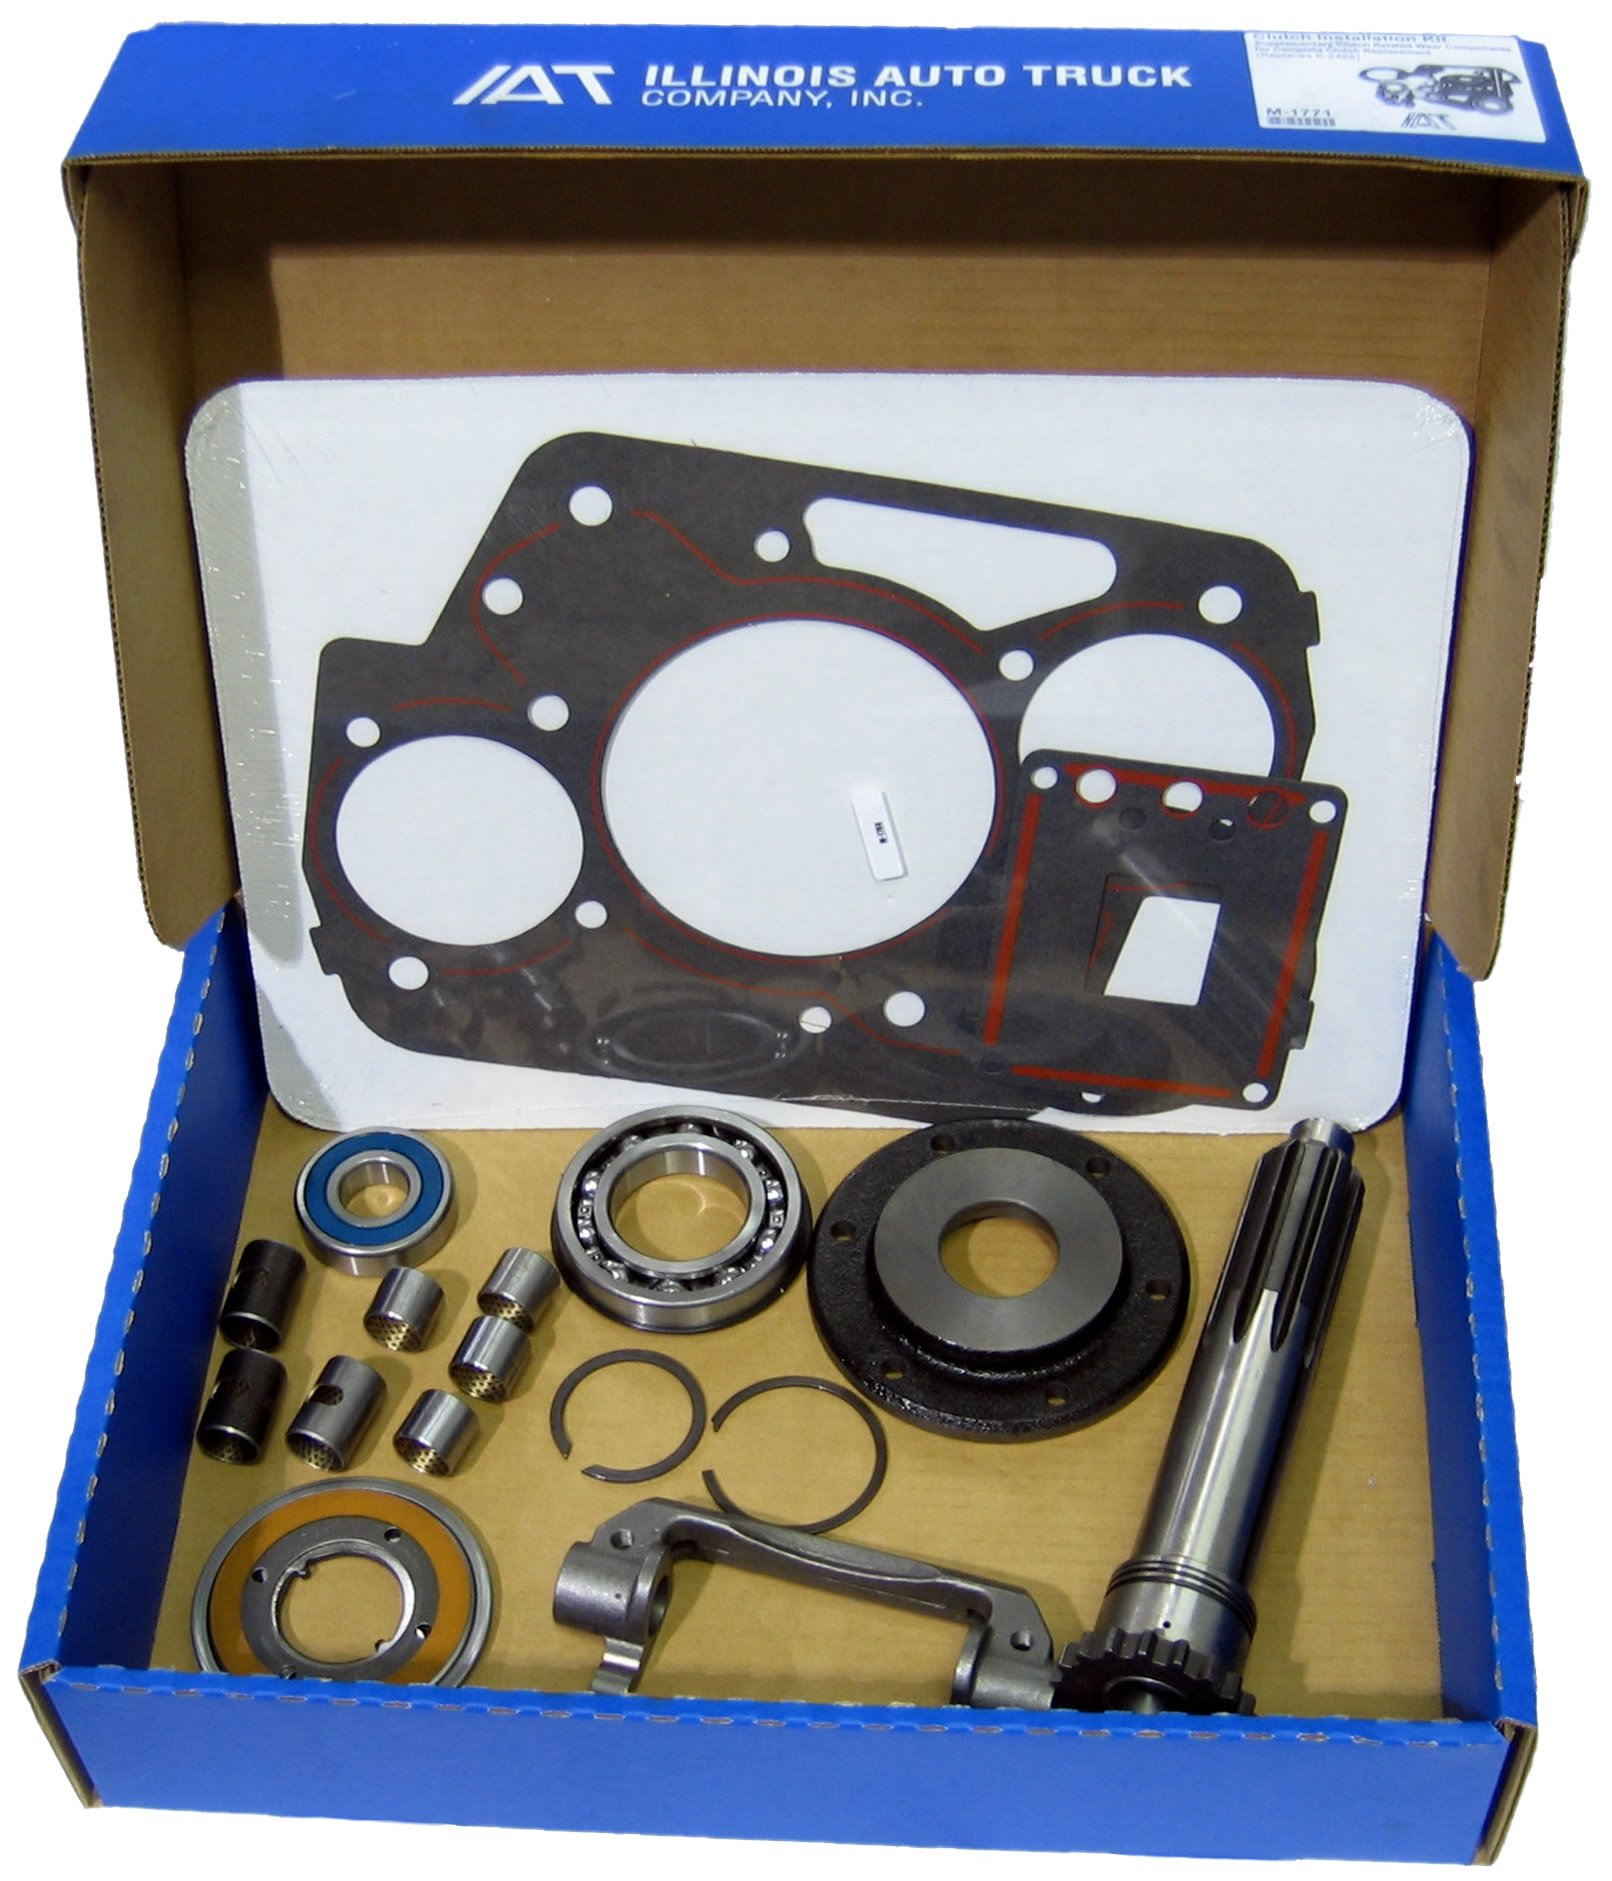 IATCO K-2468-E-IAT Clutch Installation Kit (Fuller RT Series, Includes Hinged Clutch Brake)